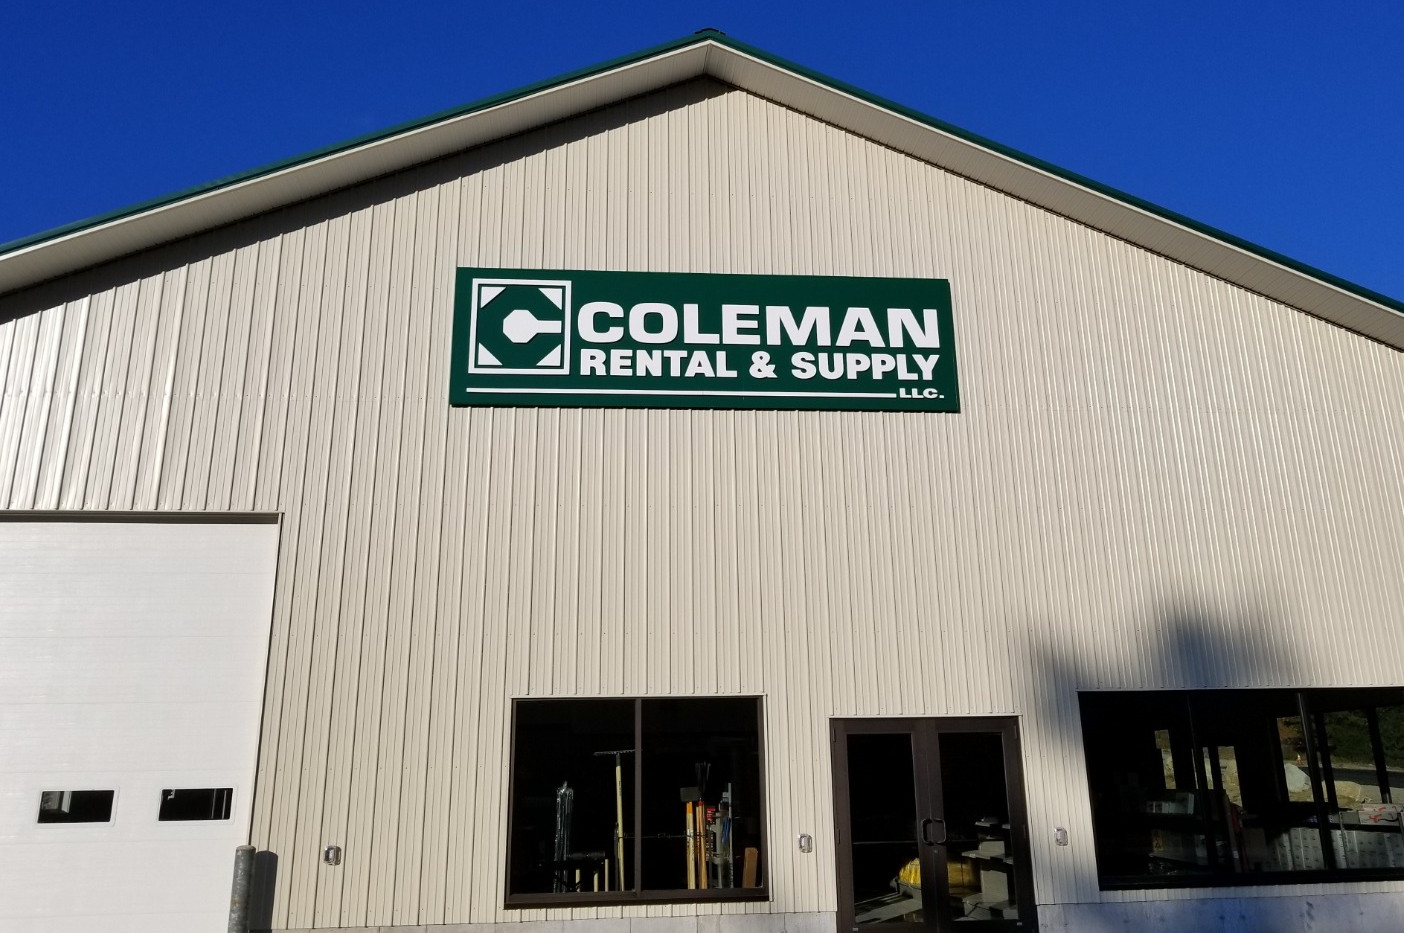 coleman rental photo for web_edited.jpg